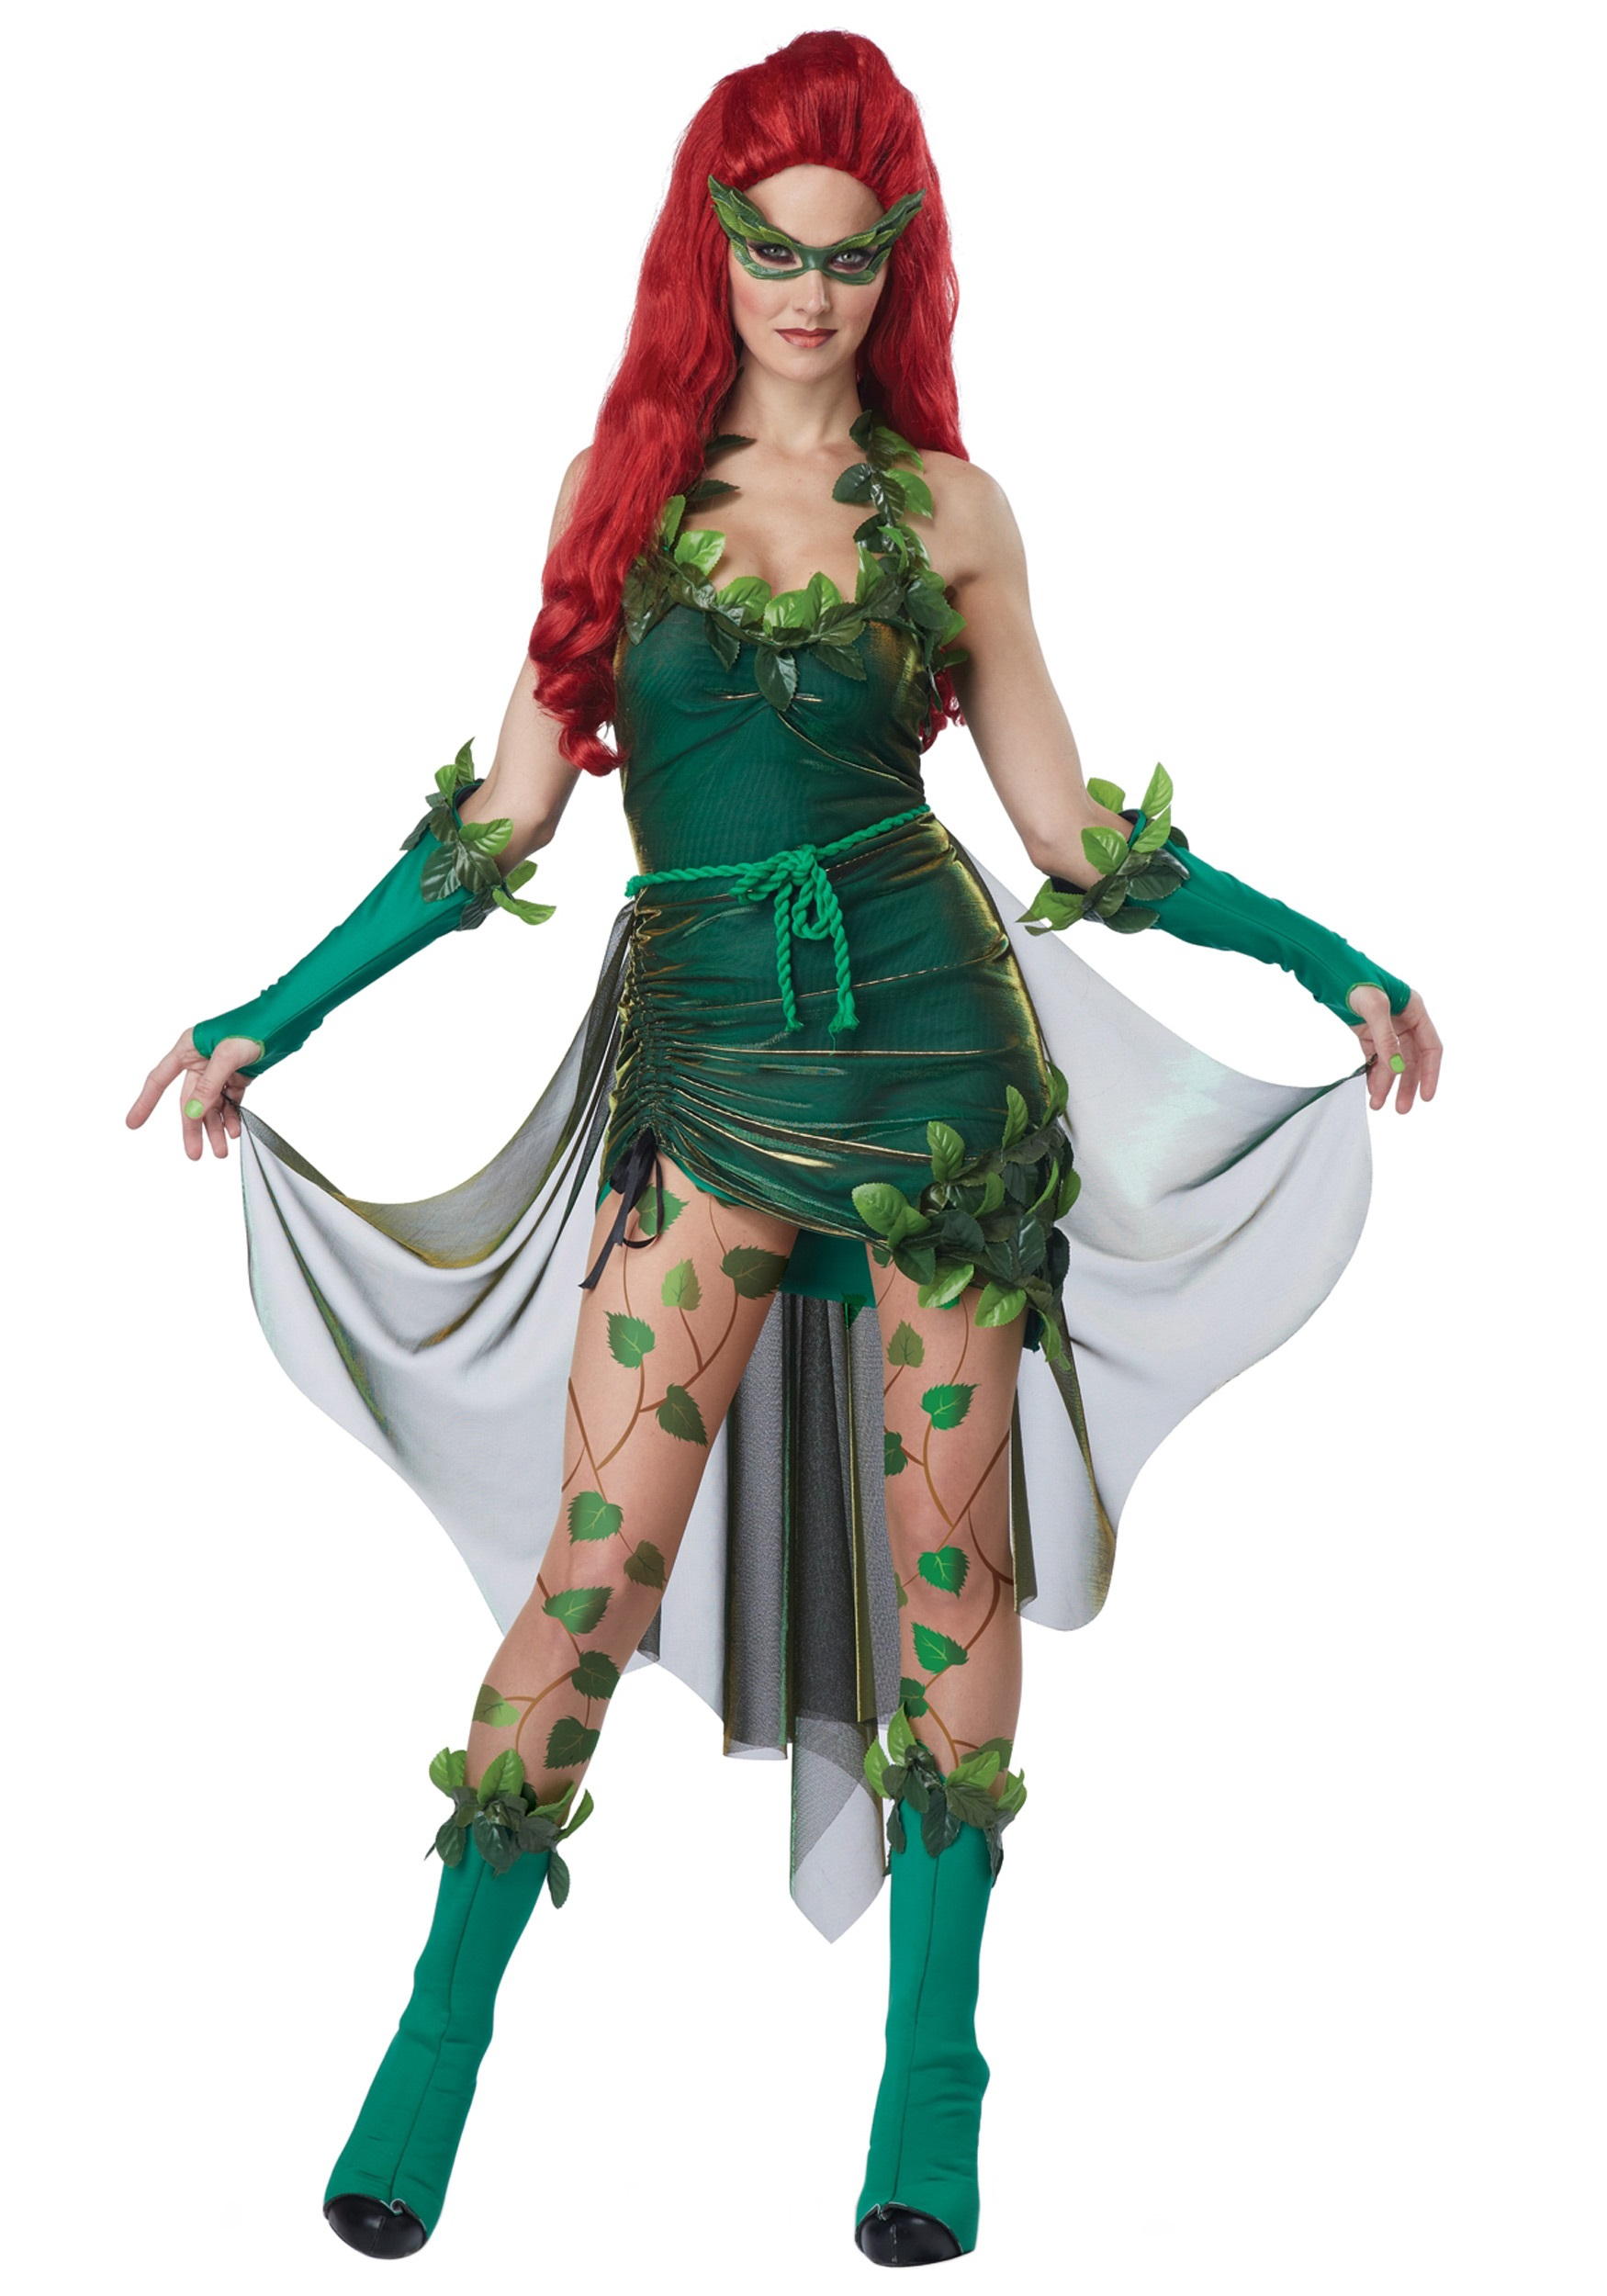 Lethal Beauty Costume  sc 1 st  Halloween Costumes & Lethal Beauty Costume - Halloween Costumes